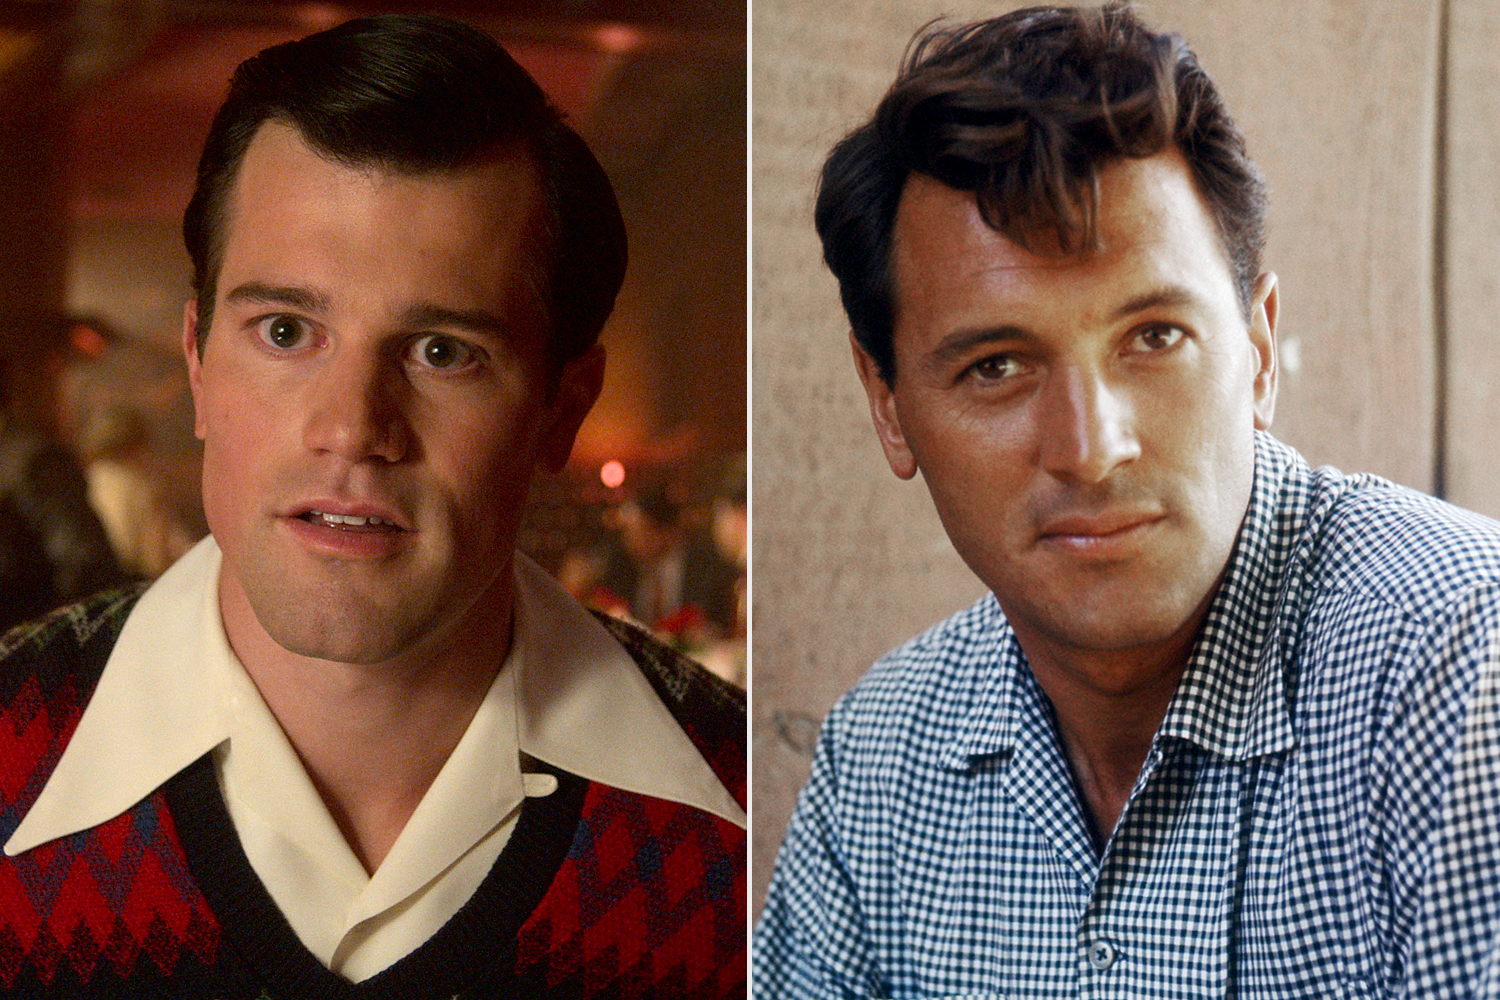 """A star of classics likeMagnificent ObsessionandPillow Talk,Rock Hudson shocked the world when the long-closeted actor revealed his AIDS diagnosis in the 1980s. Here, he's offered a glimmer of a life different from a tragic existence caught between a rock and a hard place. Picking felt a """"level of obligation and gravity"""" portraying him, given Hudson's place in Hollywood history. """"I just found myself falling in love with Rock,"""" Picking says. """"I just wish he was alive and well so he could see the social progress [and] open-mindedness we've adopted."""""""